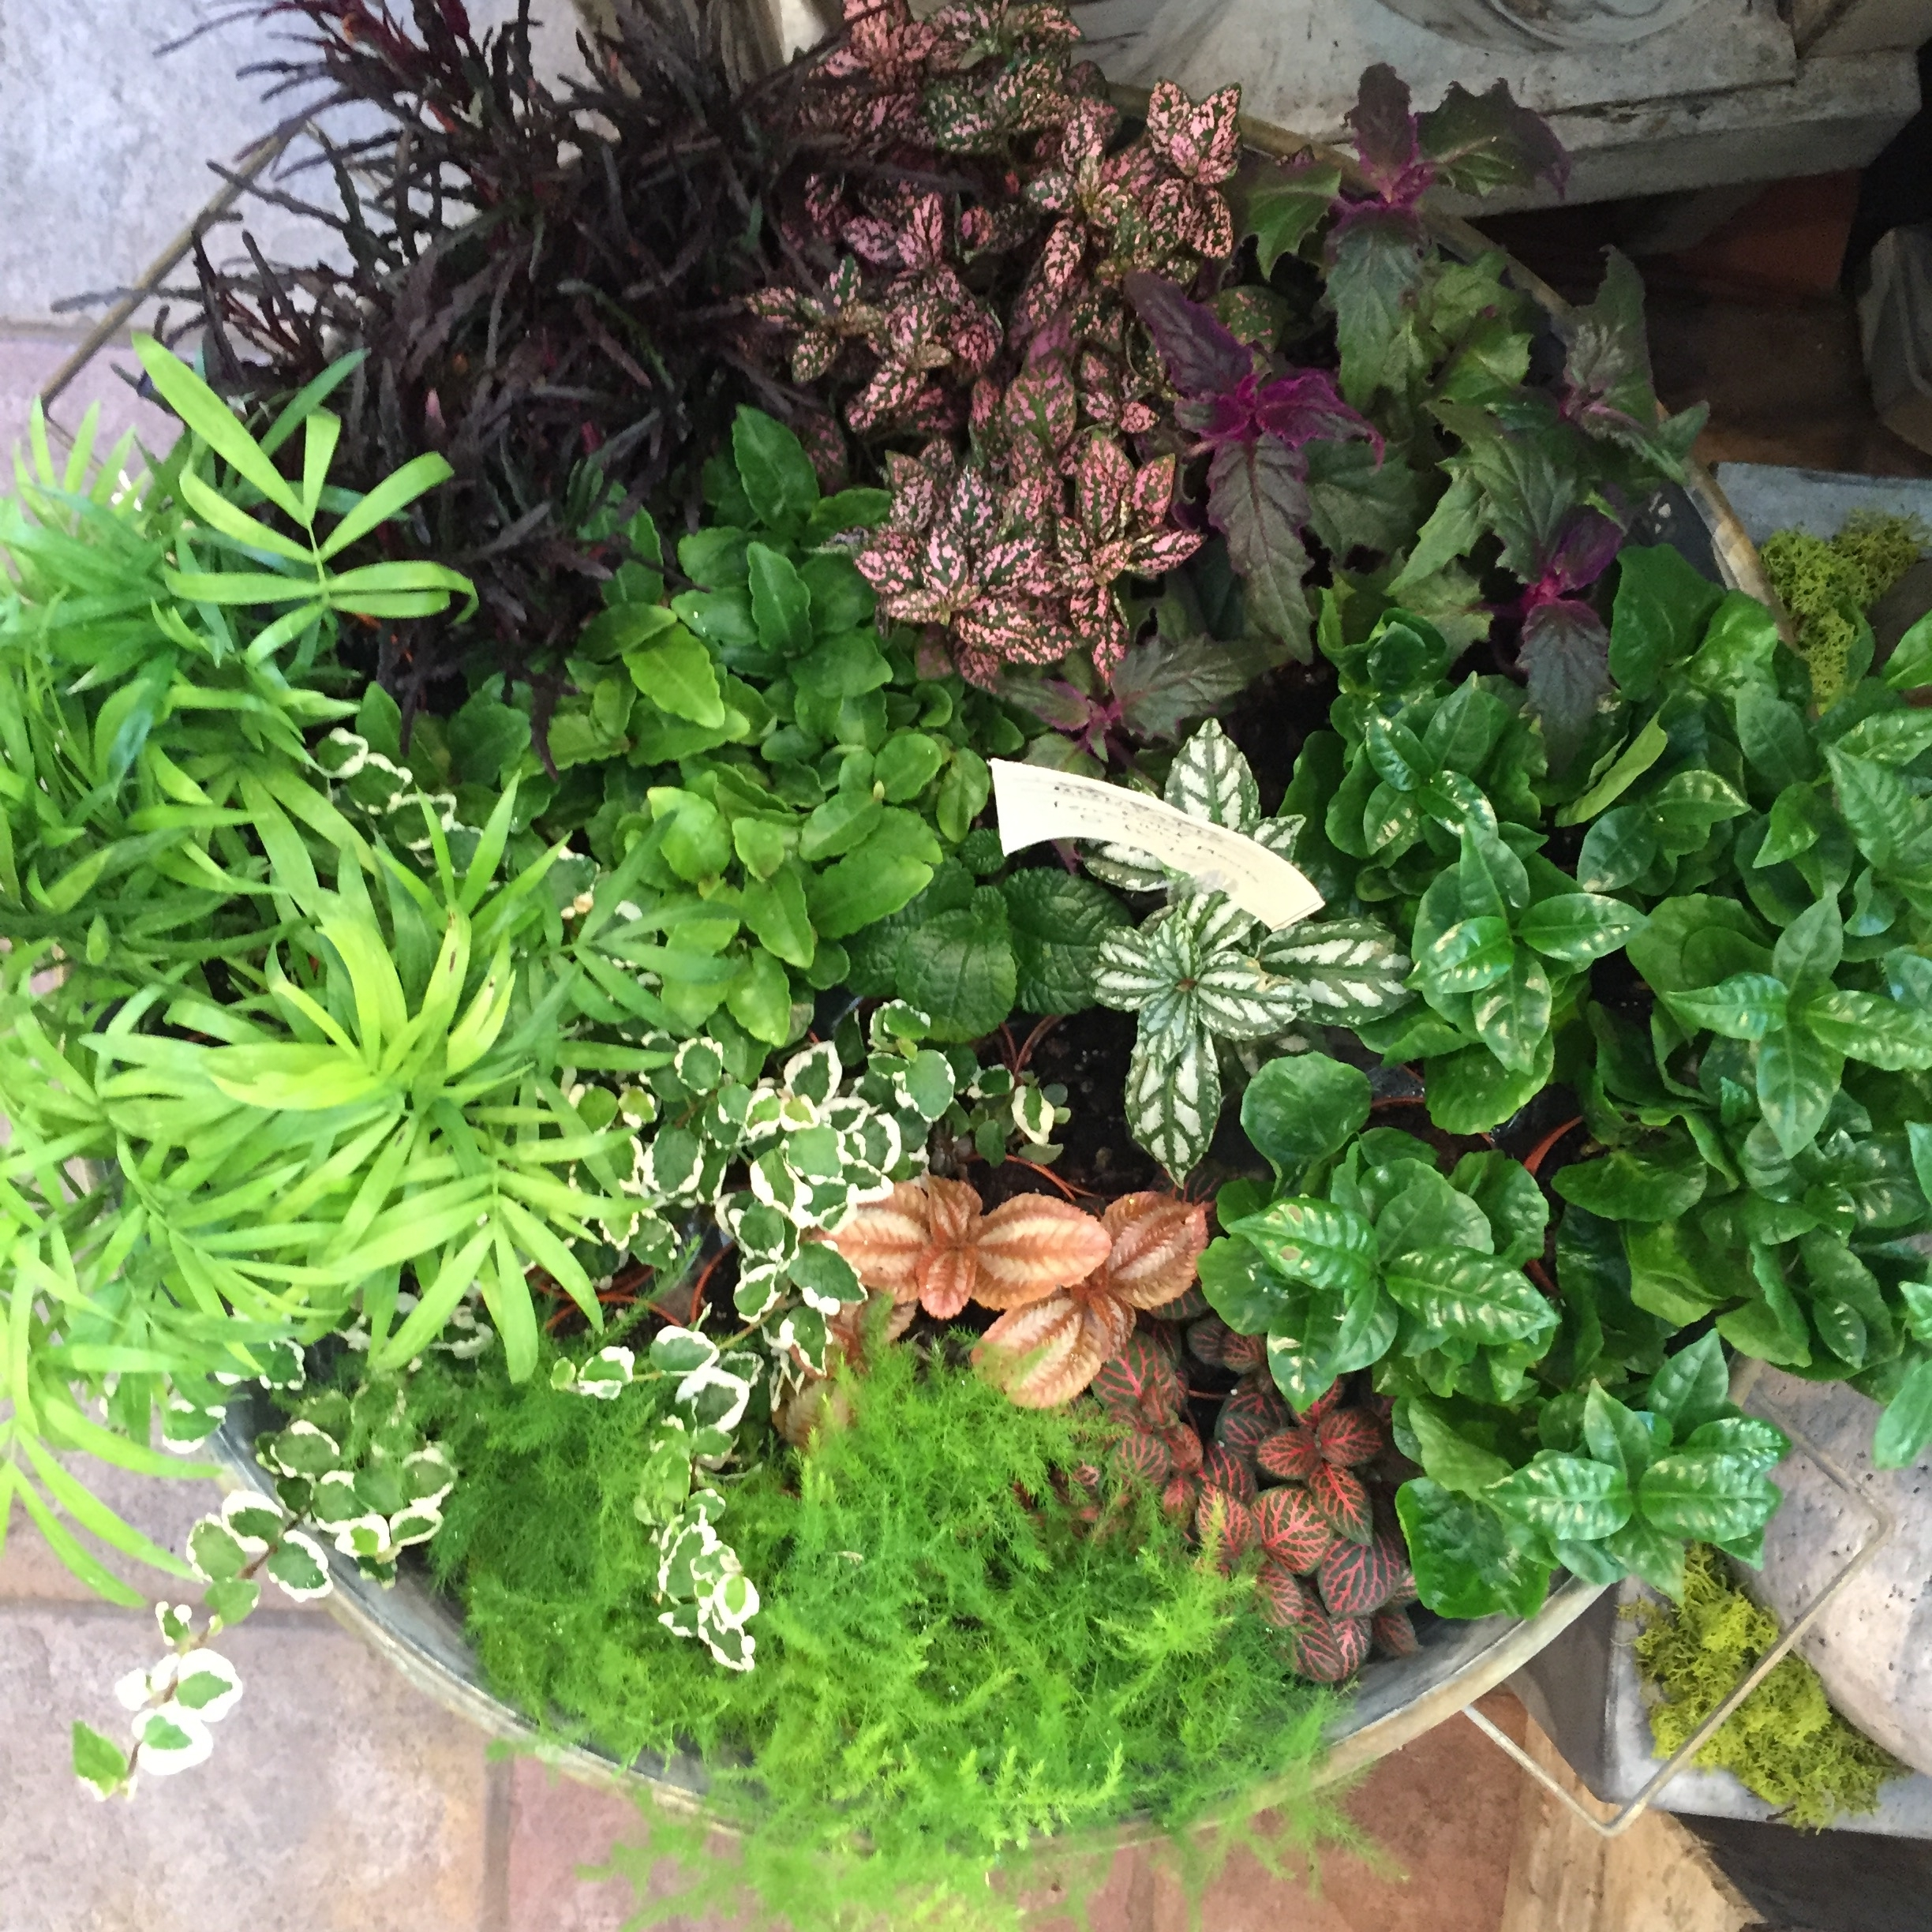 These assorted mini terrarium plants have been a huge hit this summer! We can barely keep them on the shelves, Coming in many different colors and textures- from tiny palms to colorful splash plants they bring a wonderful gardeny look to plantings.